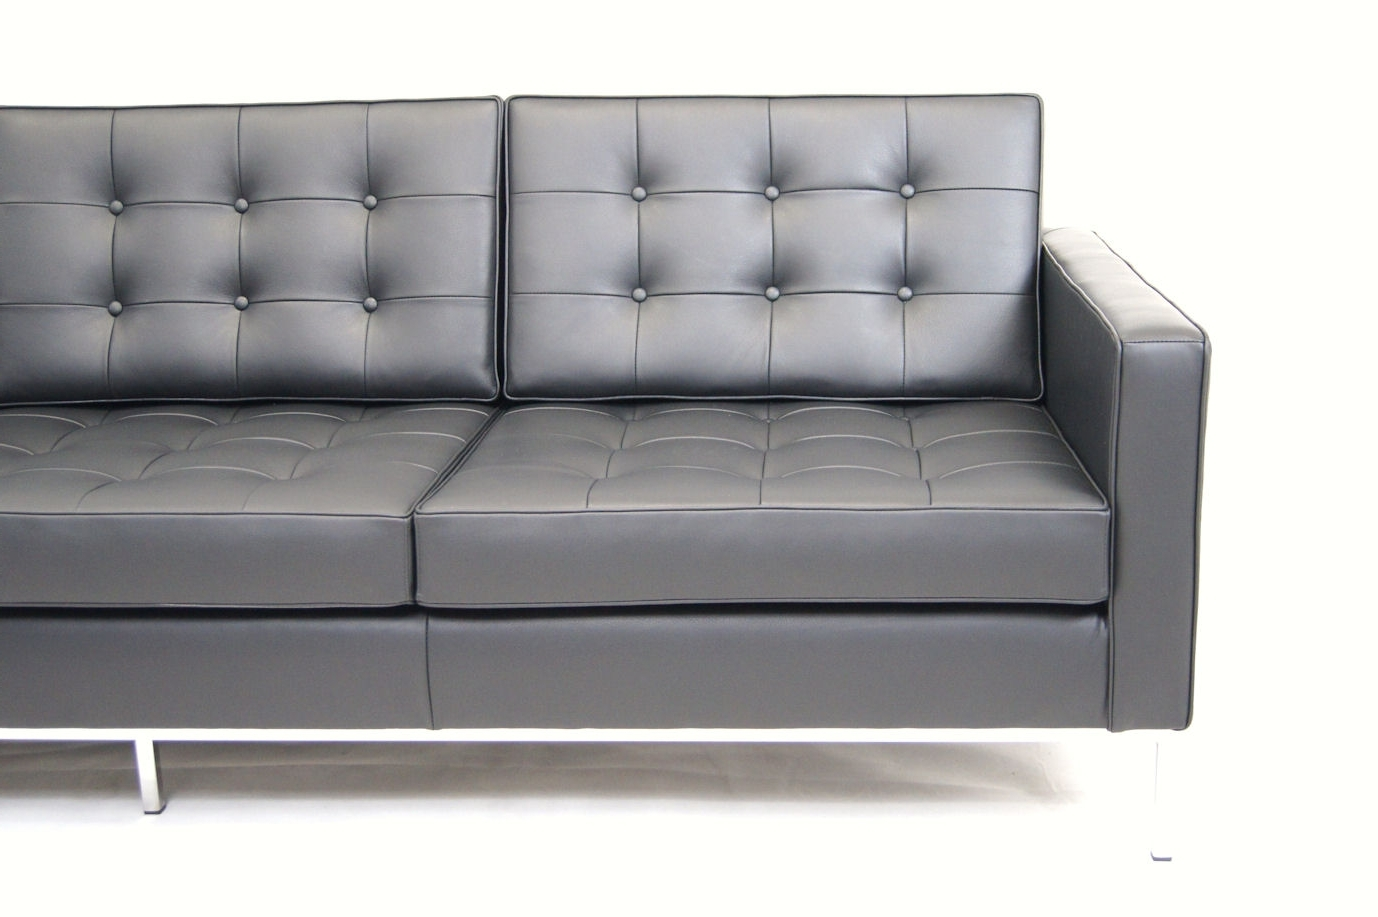 Florence Knoll Sofa Canada « House Plans Ideas With Most Recent Florence Knoll Fabric Sofas (View 13 of 15)